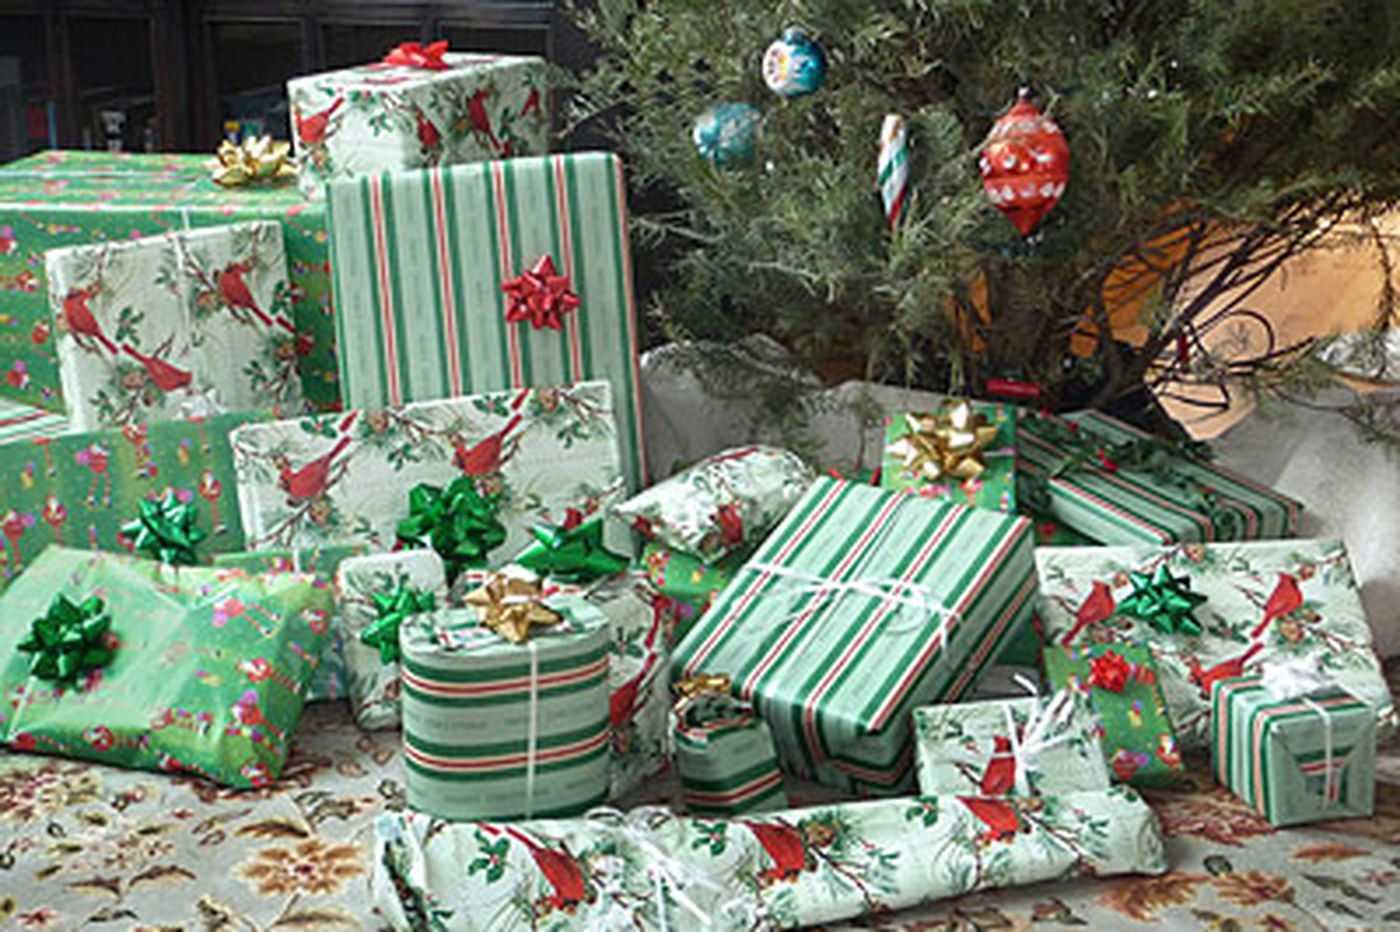 The gift of being Jewish at Christmas